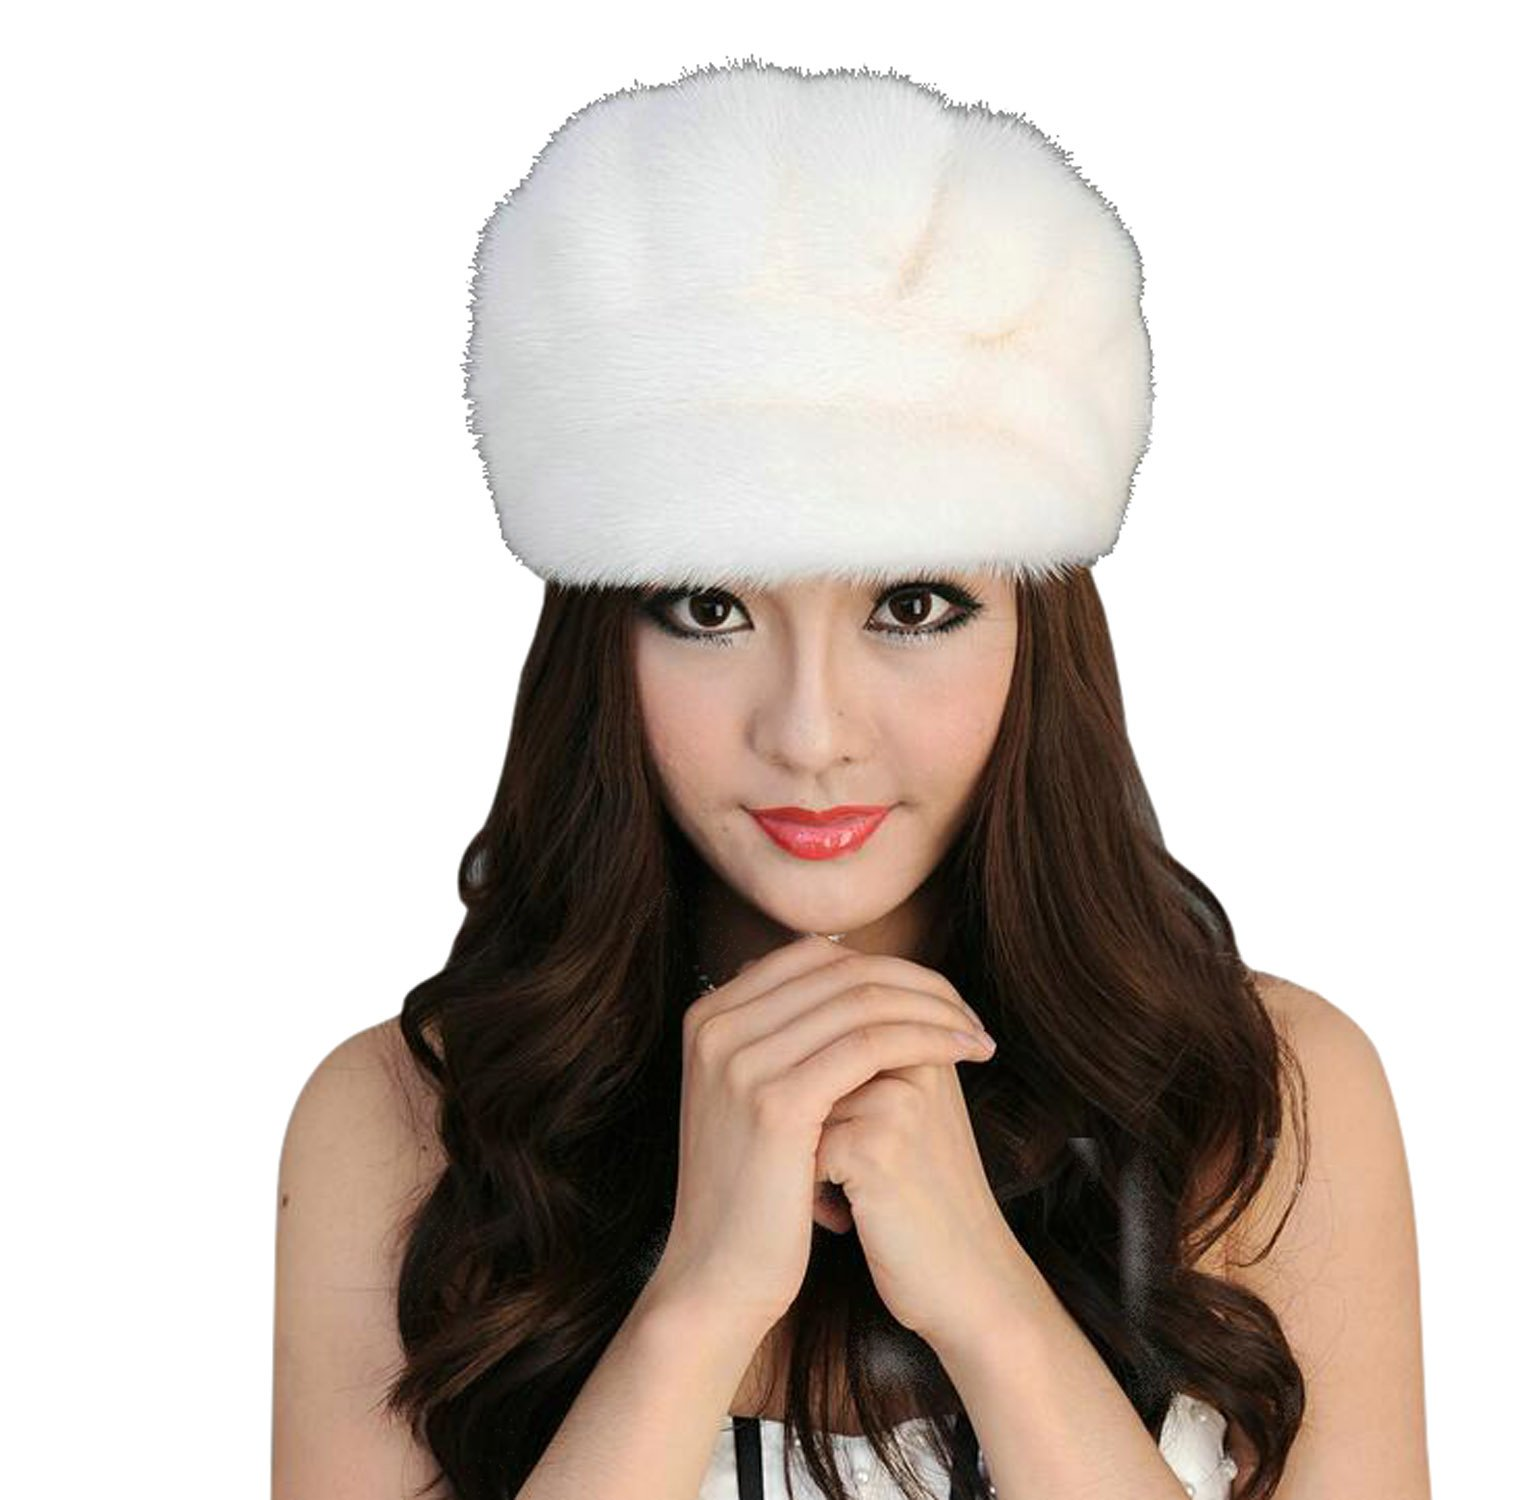 Easting Warm Winter Genuine Mink Fur Beret Hat Fashion Style Women's Berets (White) by Easting&co